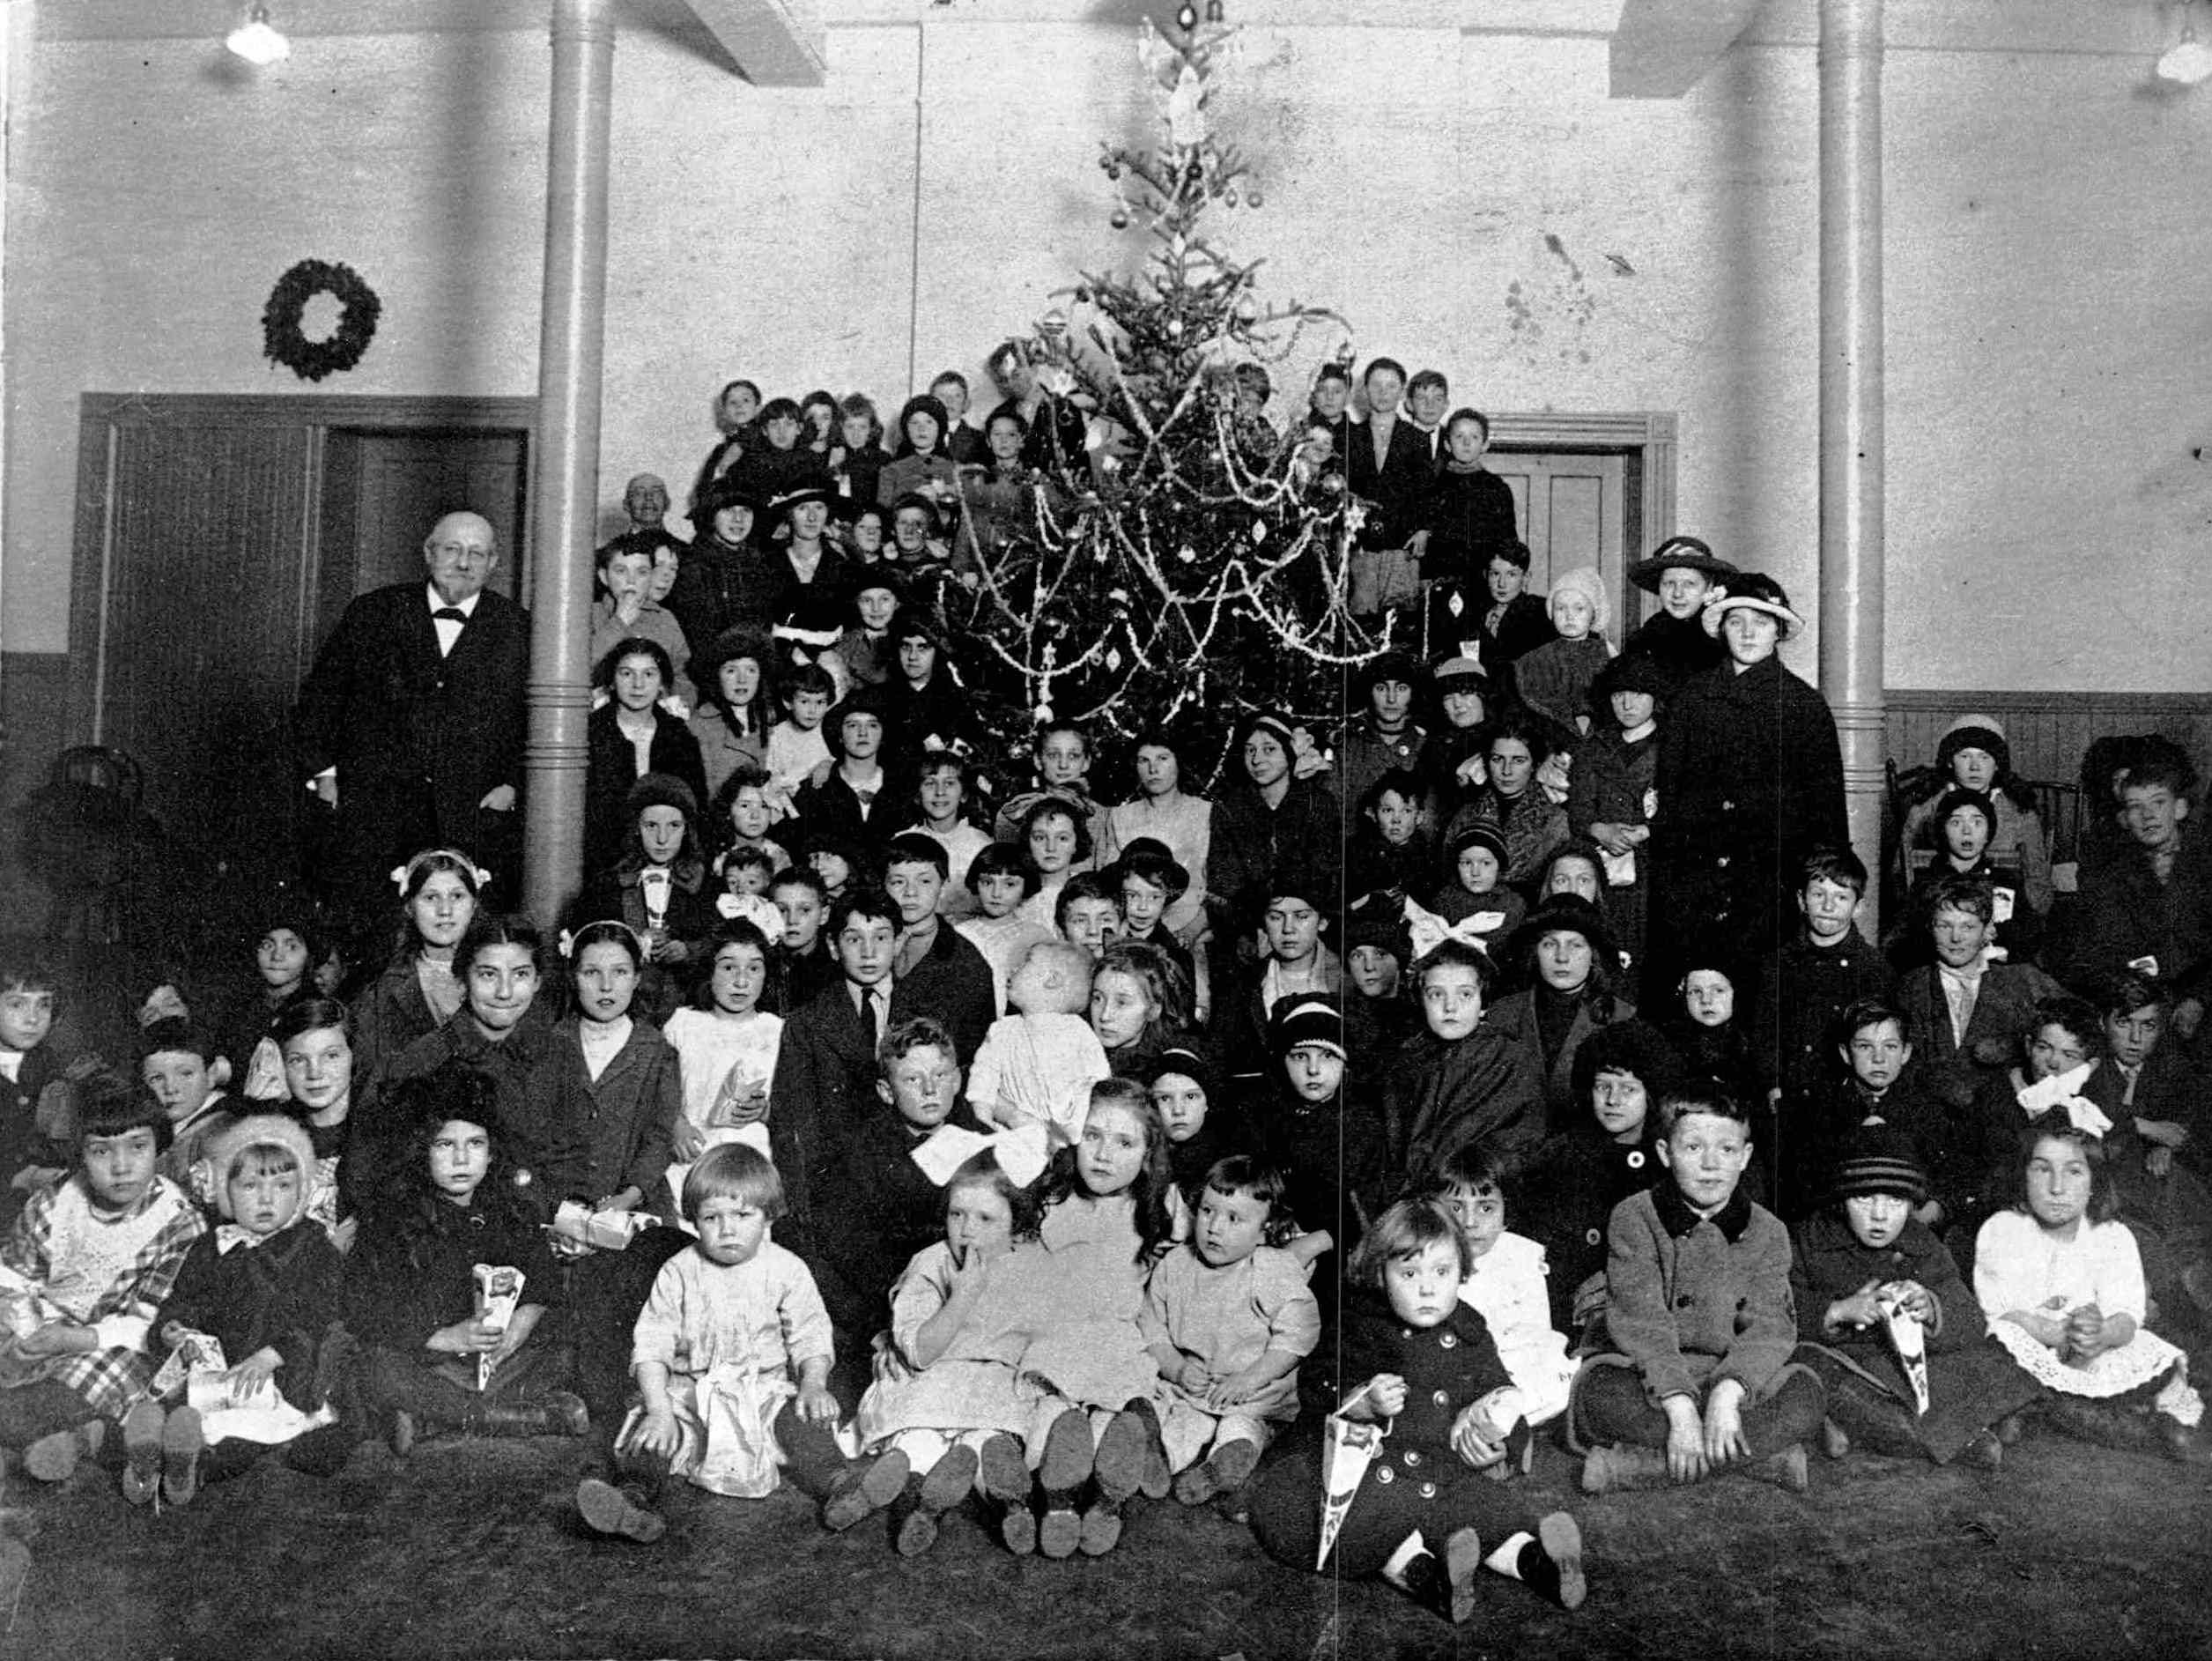 A group of Rochester children gathered around the Exposition Park Christmas Tree, circa 1914. The older man in the overcoat to the left is Rochester's colorful mayor Hiram Edgerton.